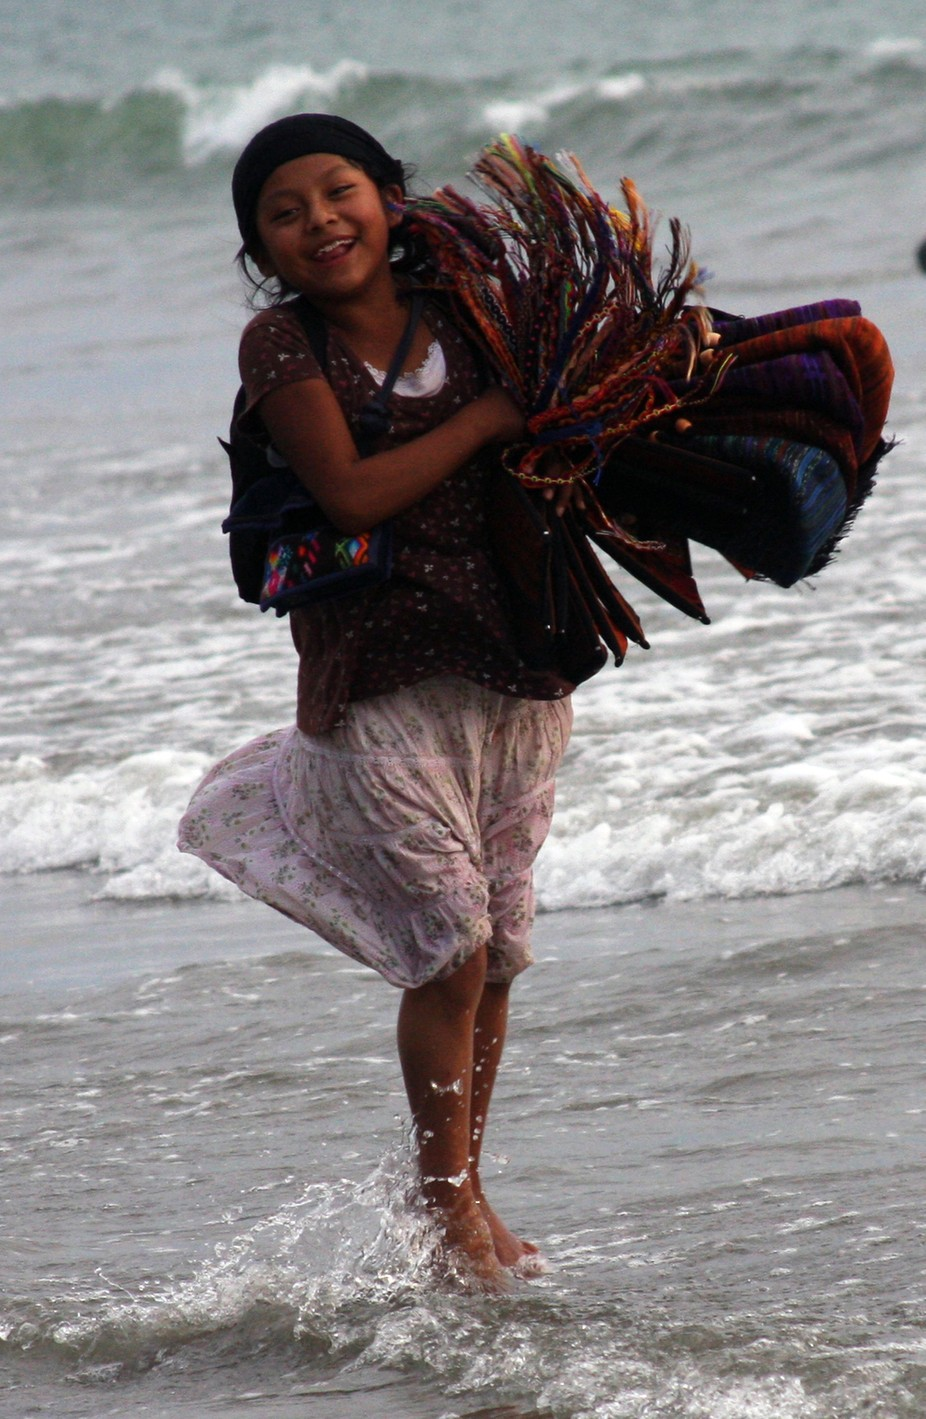 Beautiful child working hard in Bucerias, Mexico.  Still made time for the joy of running in the ...